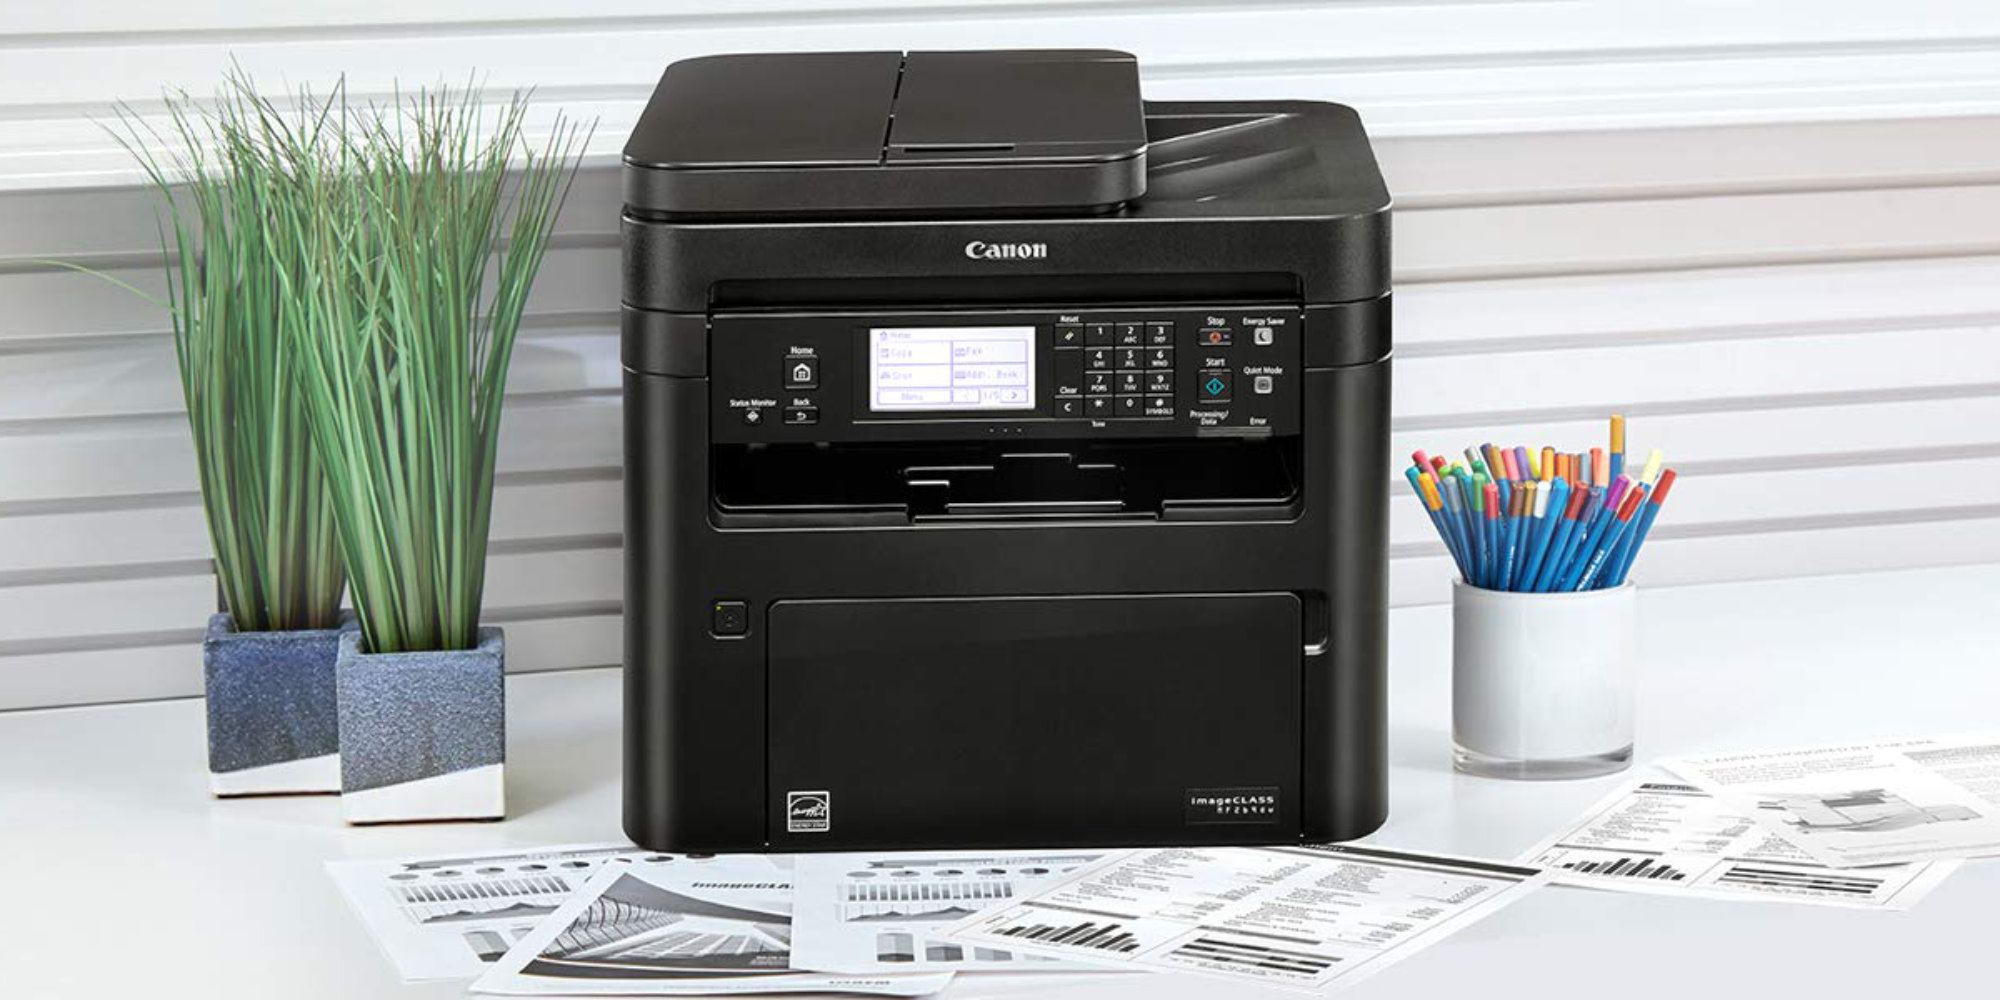 So long ink! Amazon offers Canon laser printers from $70 (Reg. up to $150) - 9to5Toys